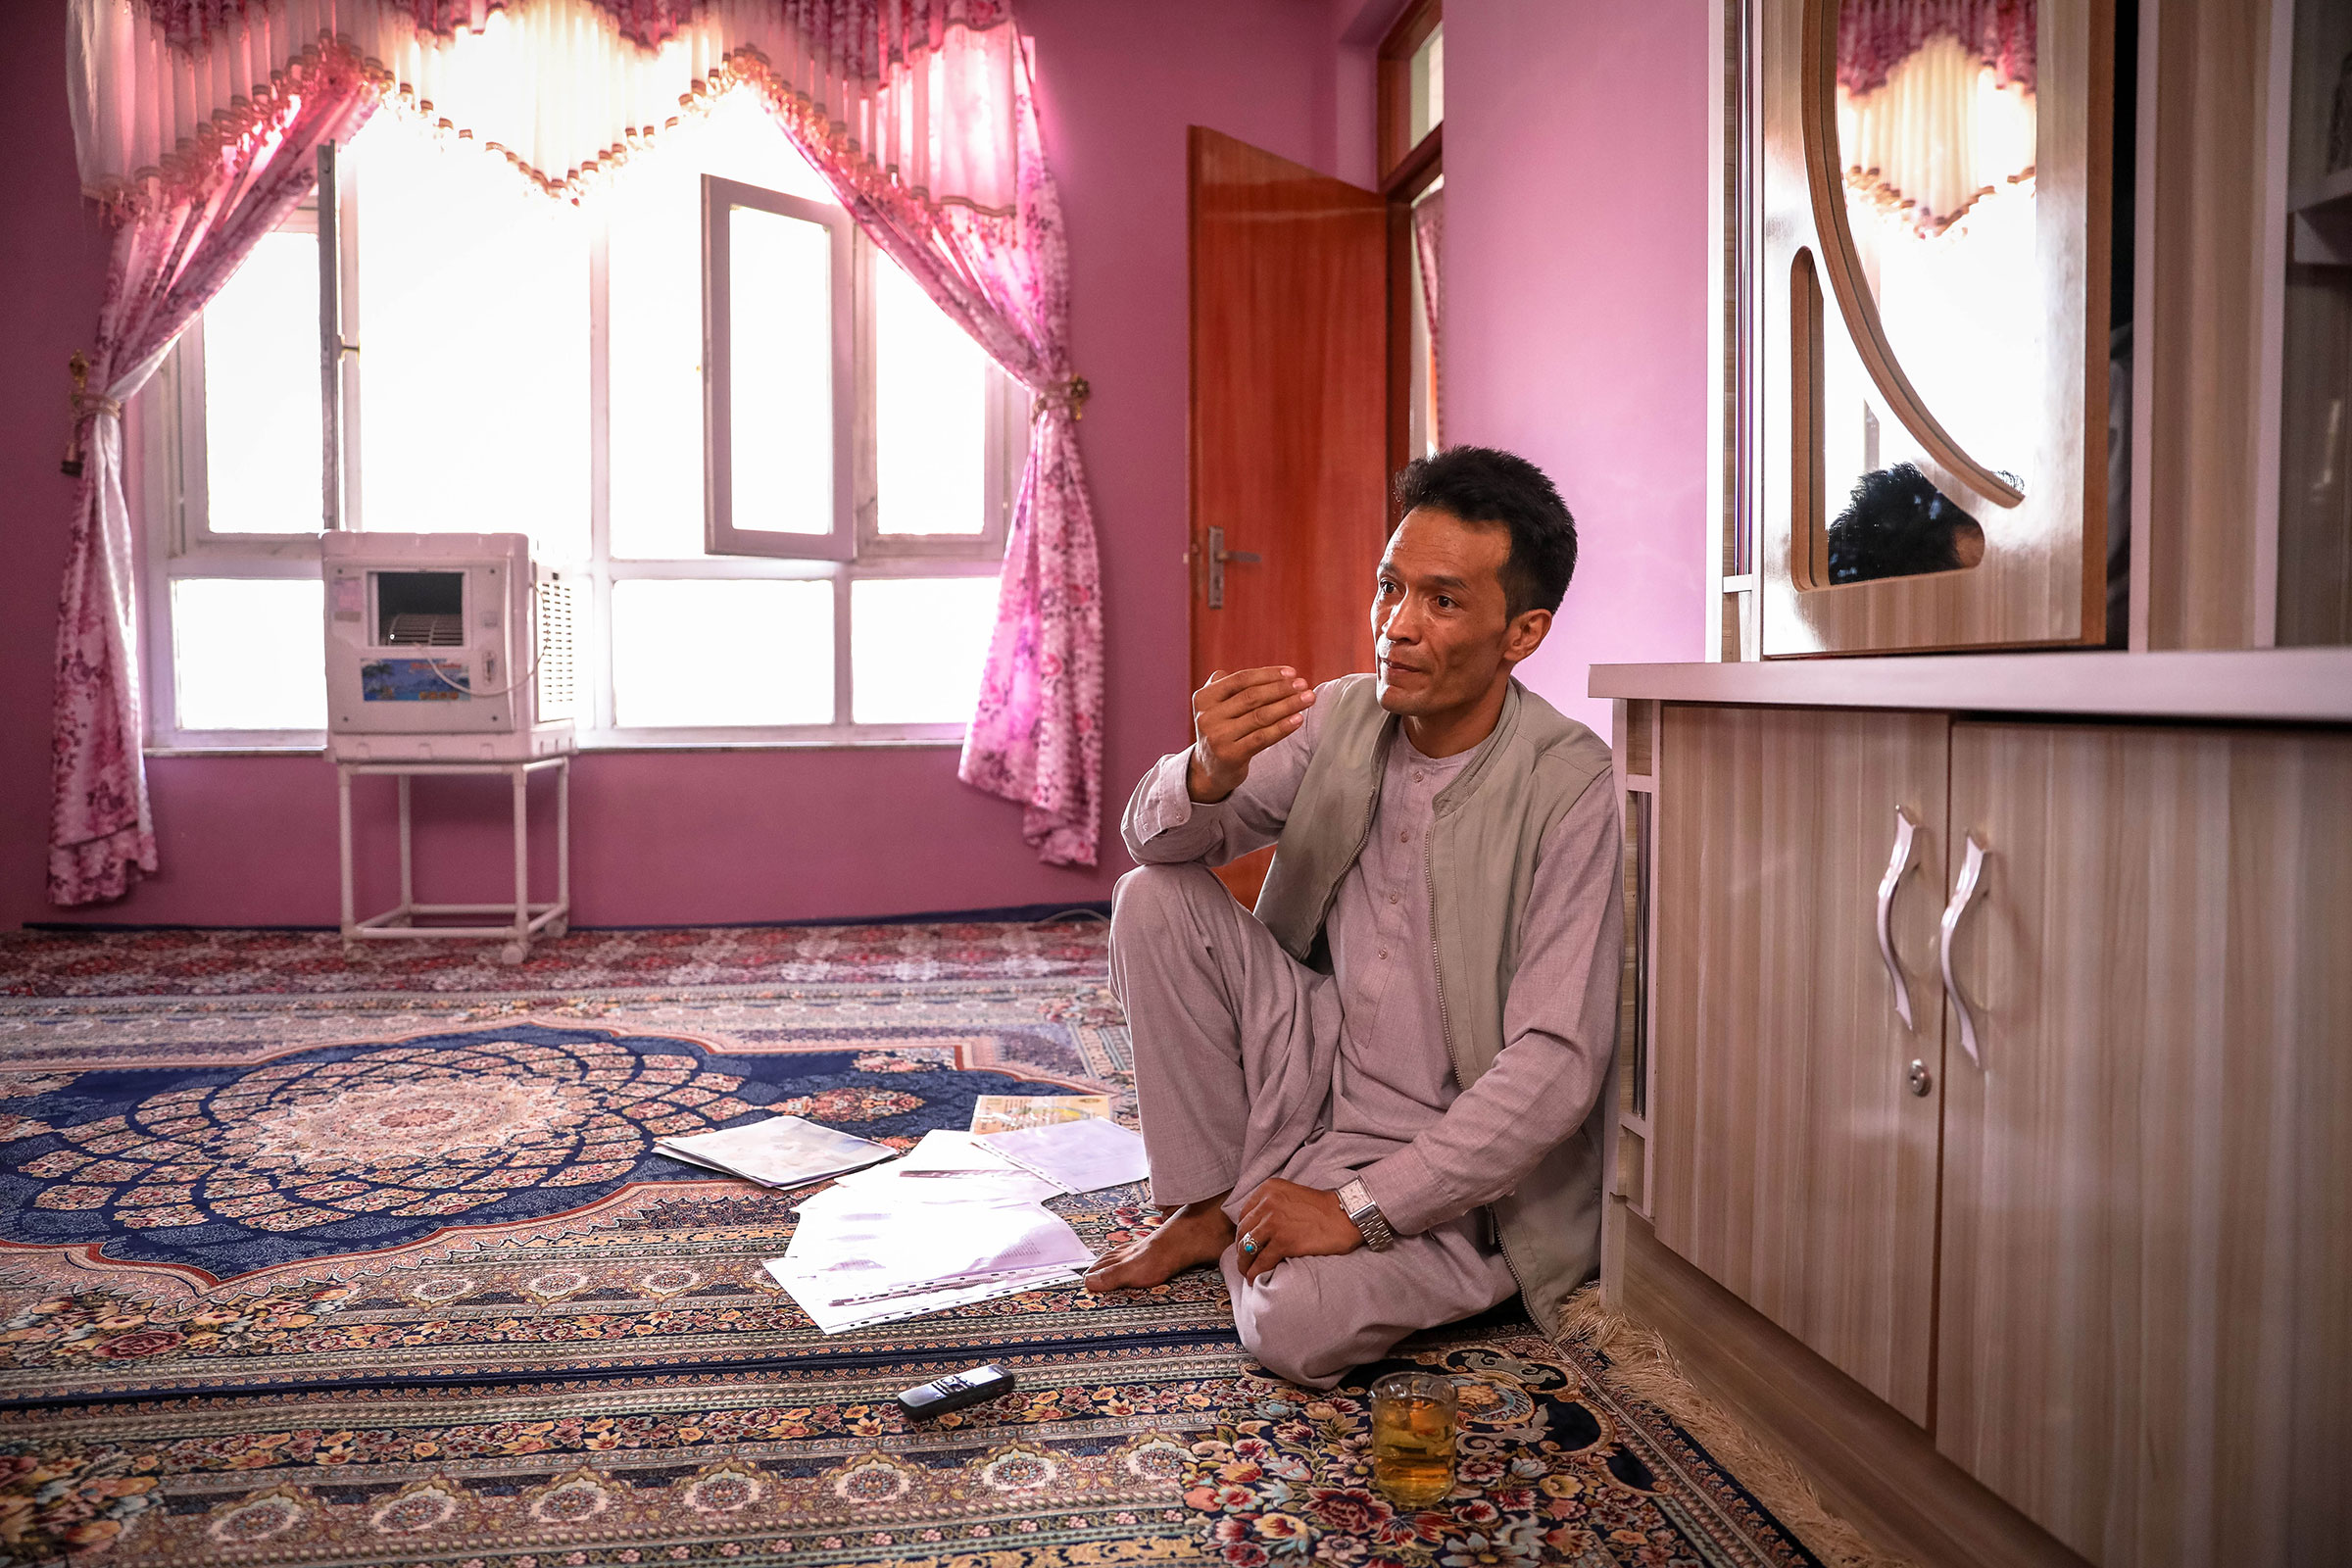 Abdul Rashid Shirzad, a former interpreter for the U.S. forces at his house in Kabul, Afghanistan, June 10, 2021. Thousands of Afghan interpreters and other employees of the U.S. forces were denied Special Immigration Visas (SIVs) by the U.S. government.